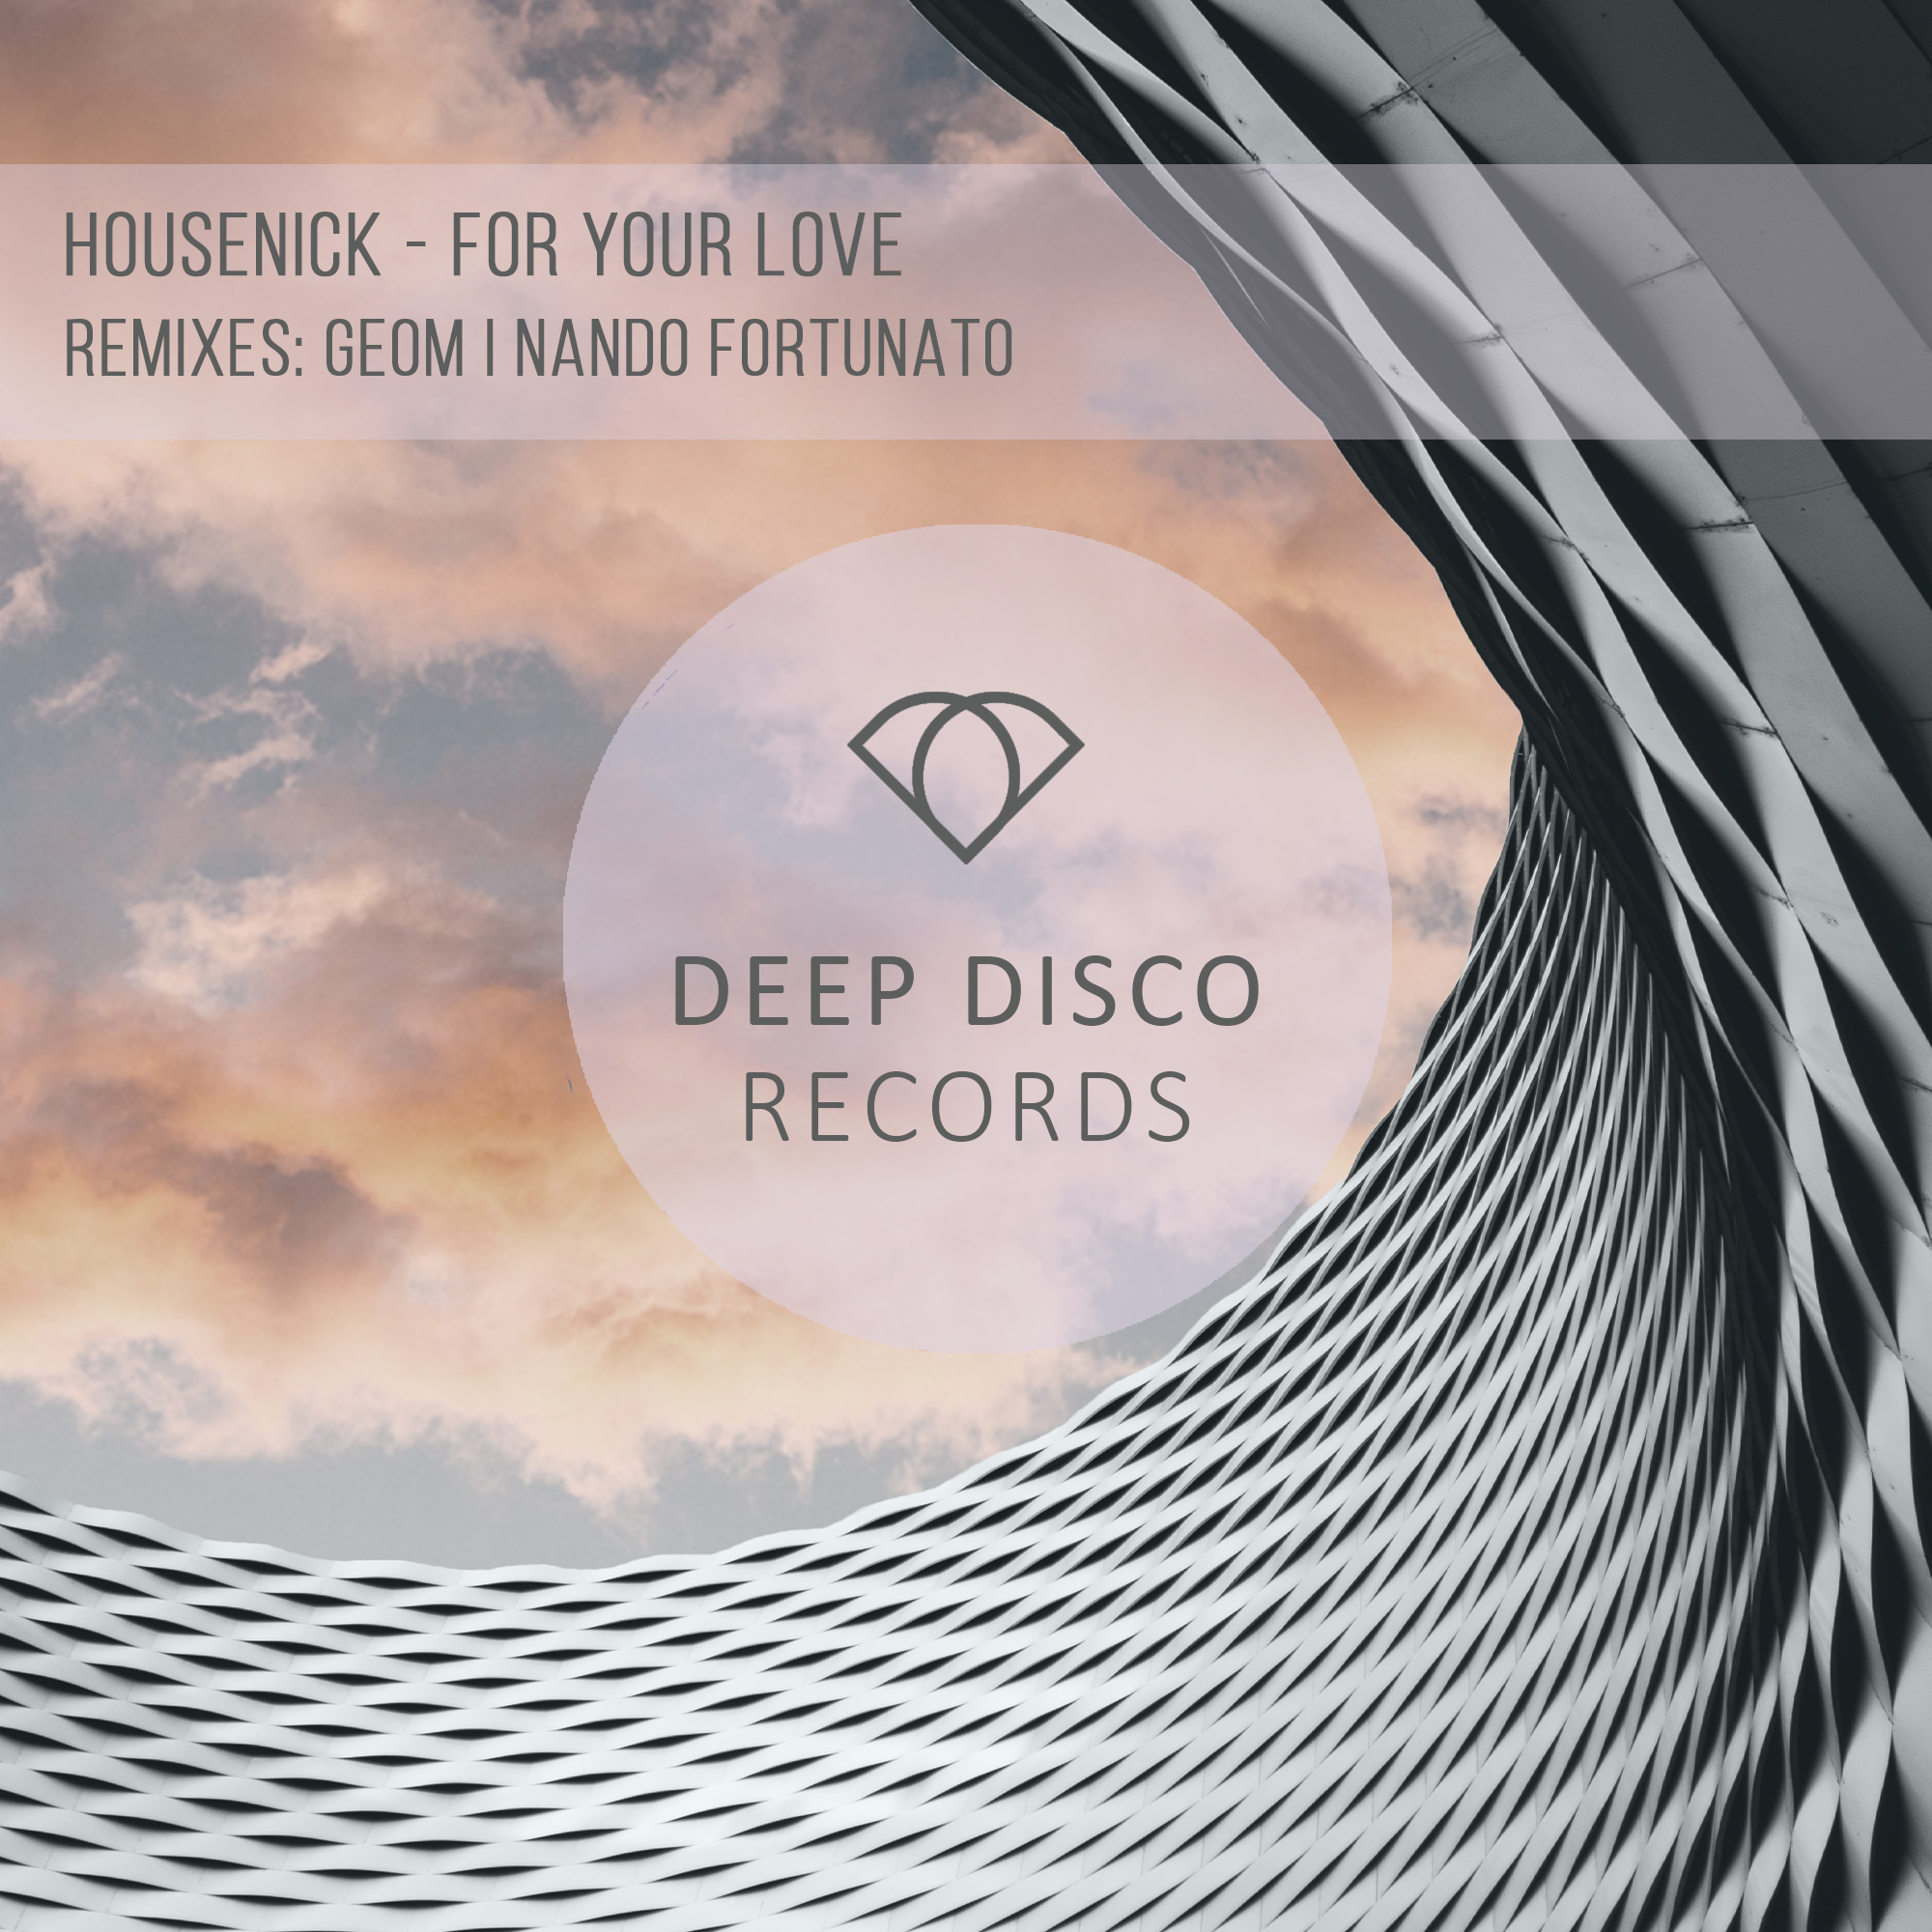 Housenick - For Your Love Image